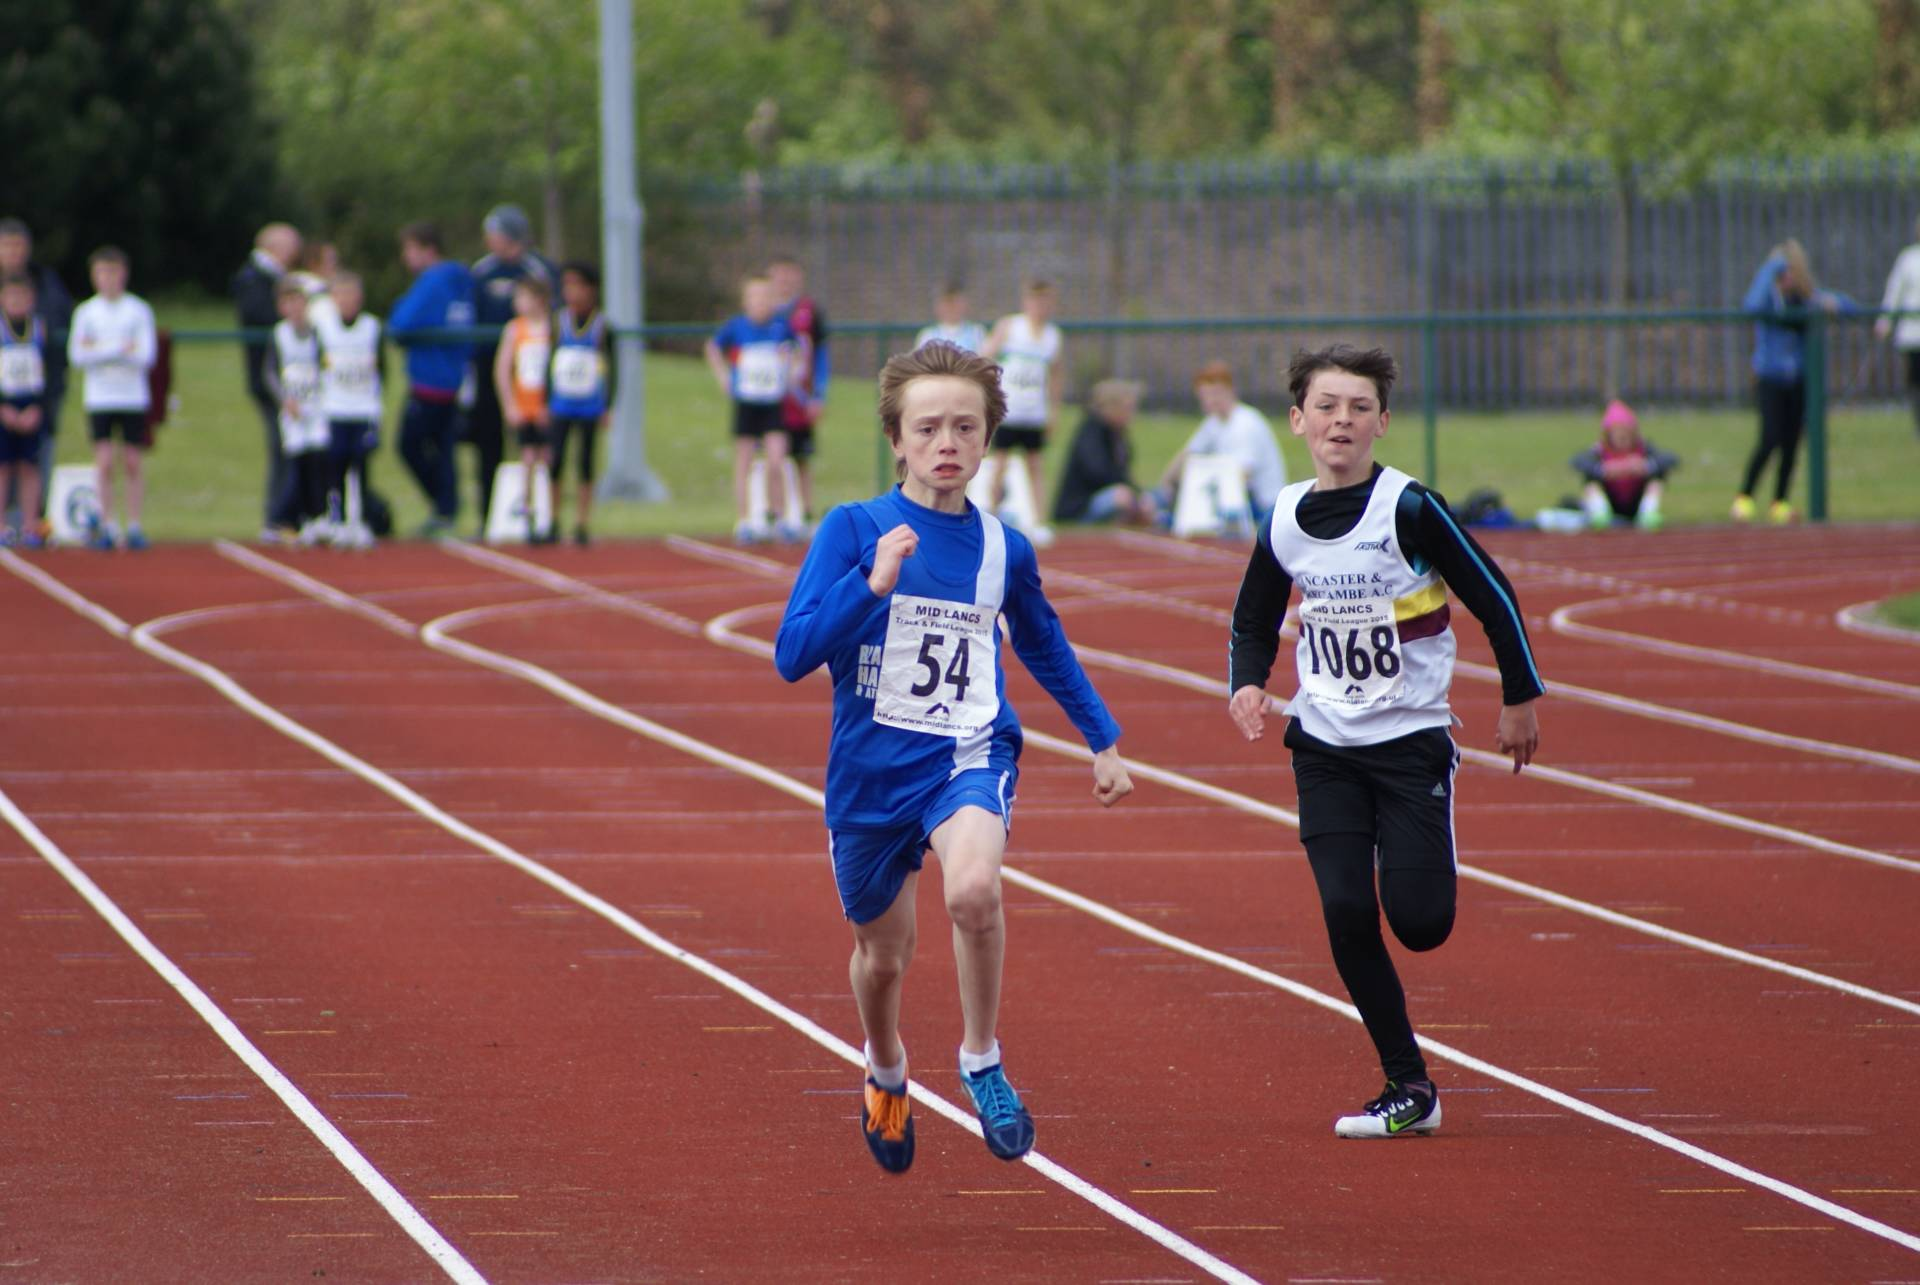 Mid Lancs T & F League and 16 new PB's for the Harriers young athletes